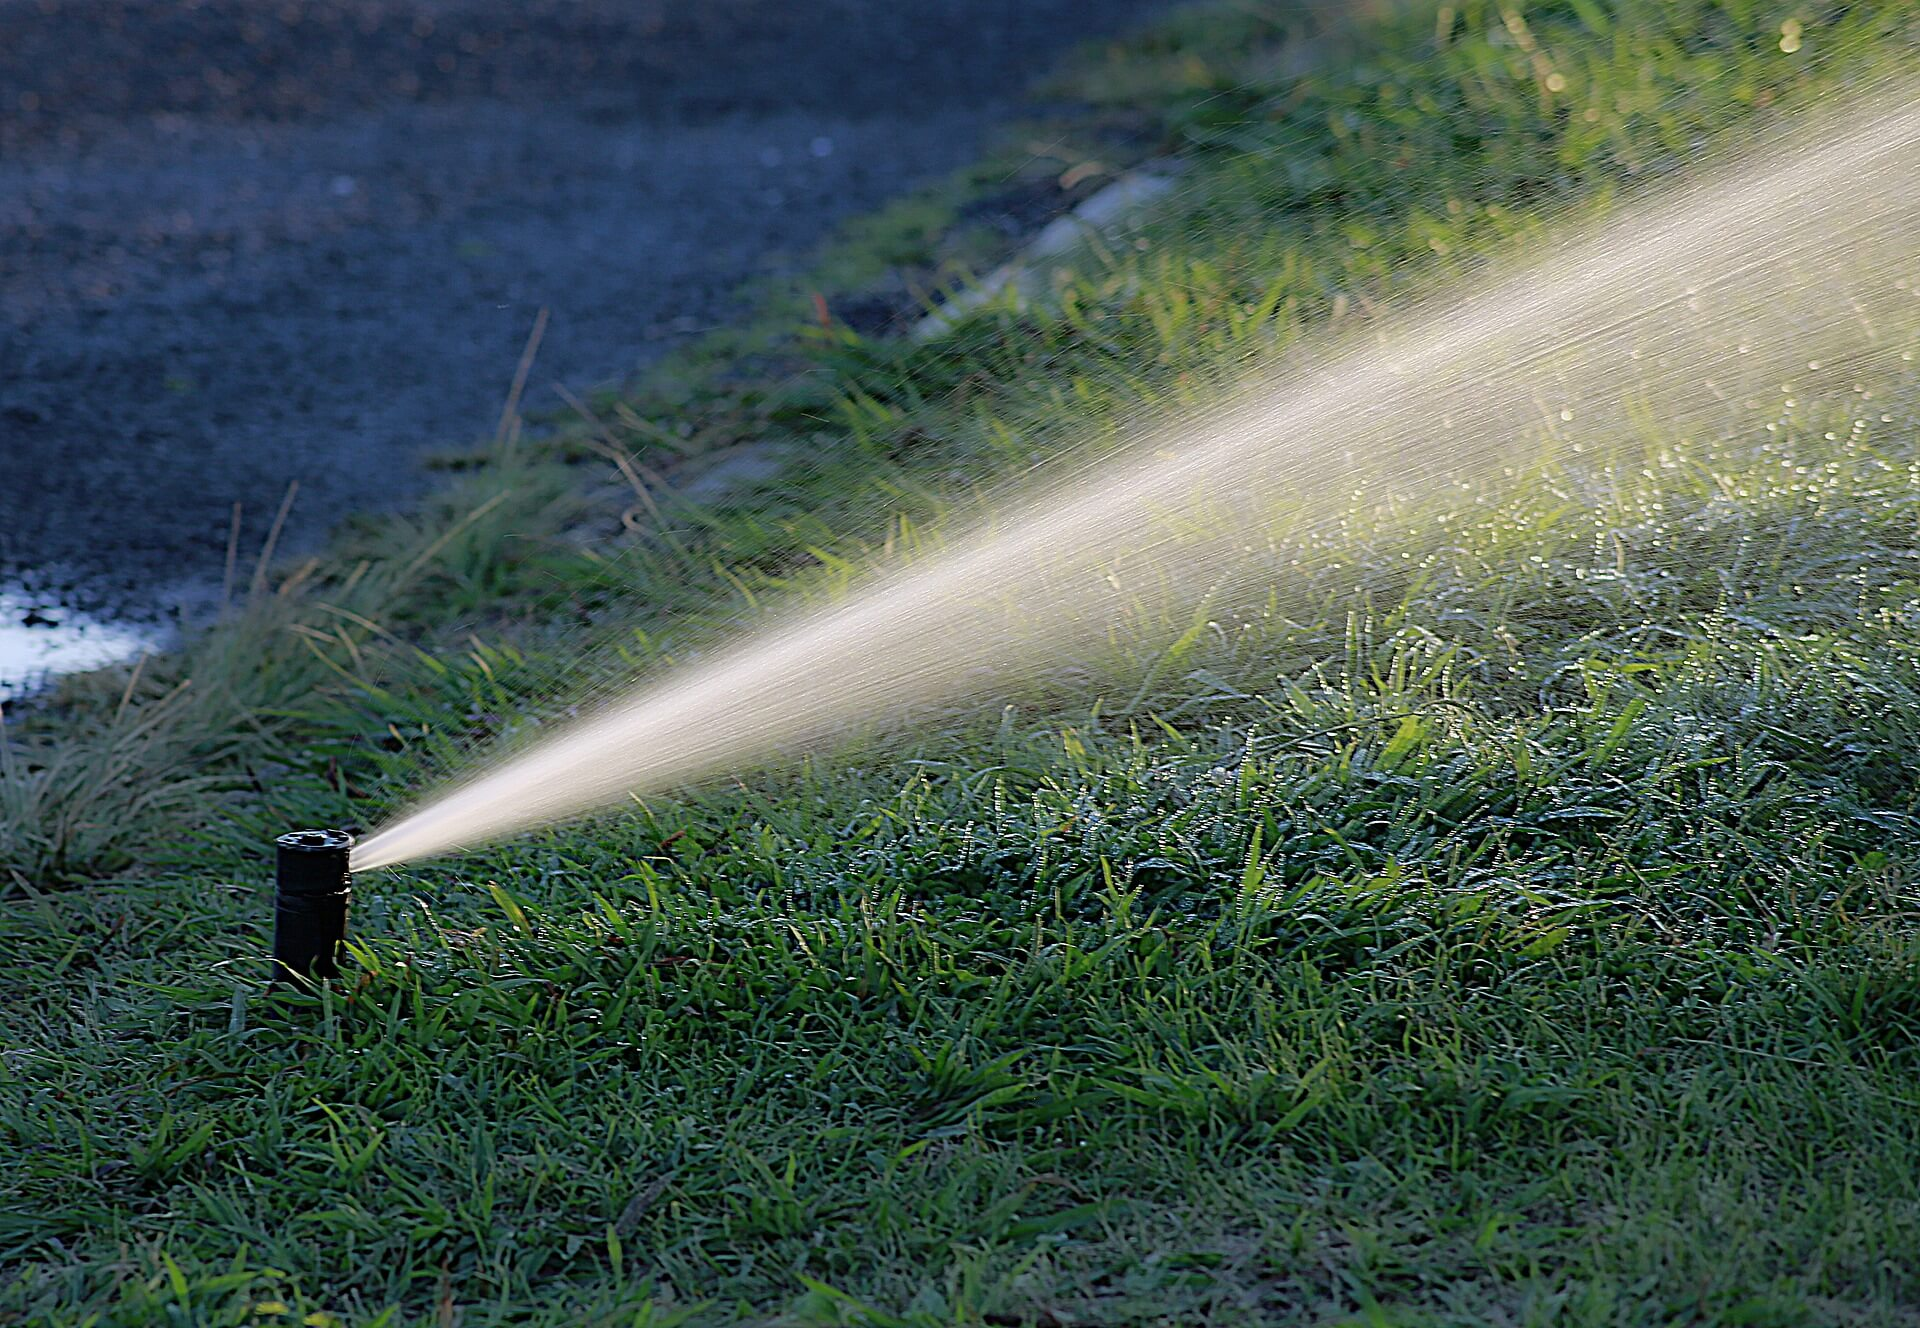 Pop-up Sprinkler